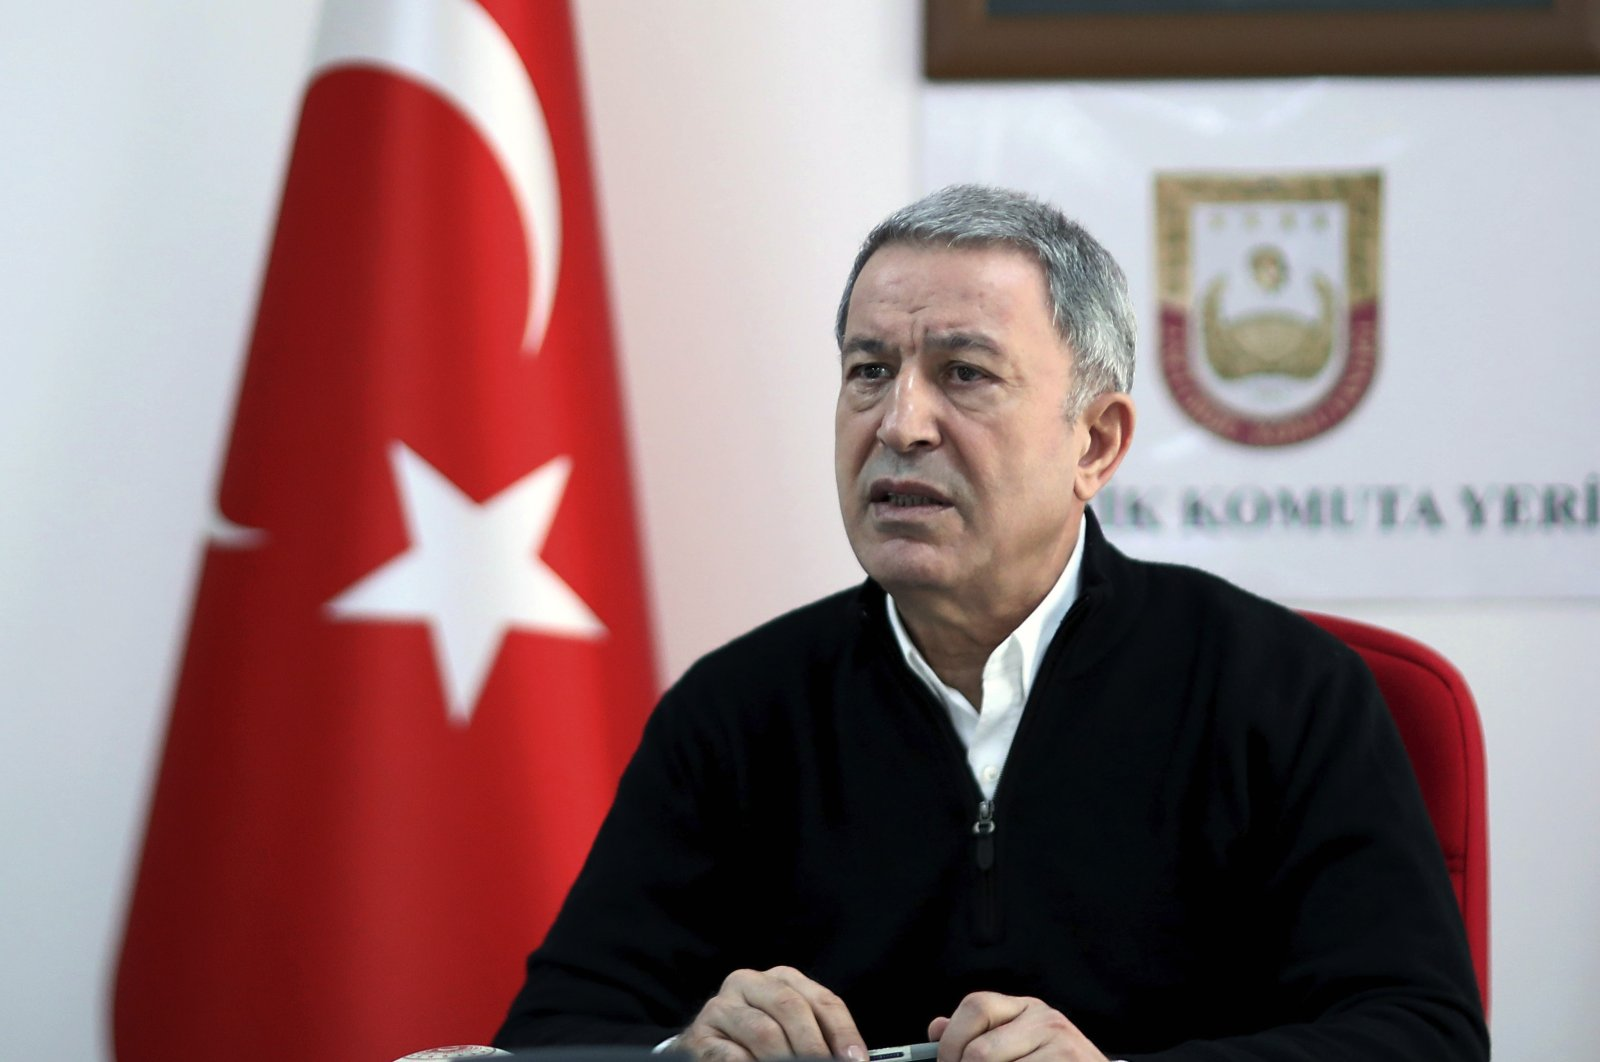 Defense Minister Hulusi Akar speaks at a military headquarters near the Syrian border in Hatay, Turkey, March 1, 2020. (AP Photo)